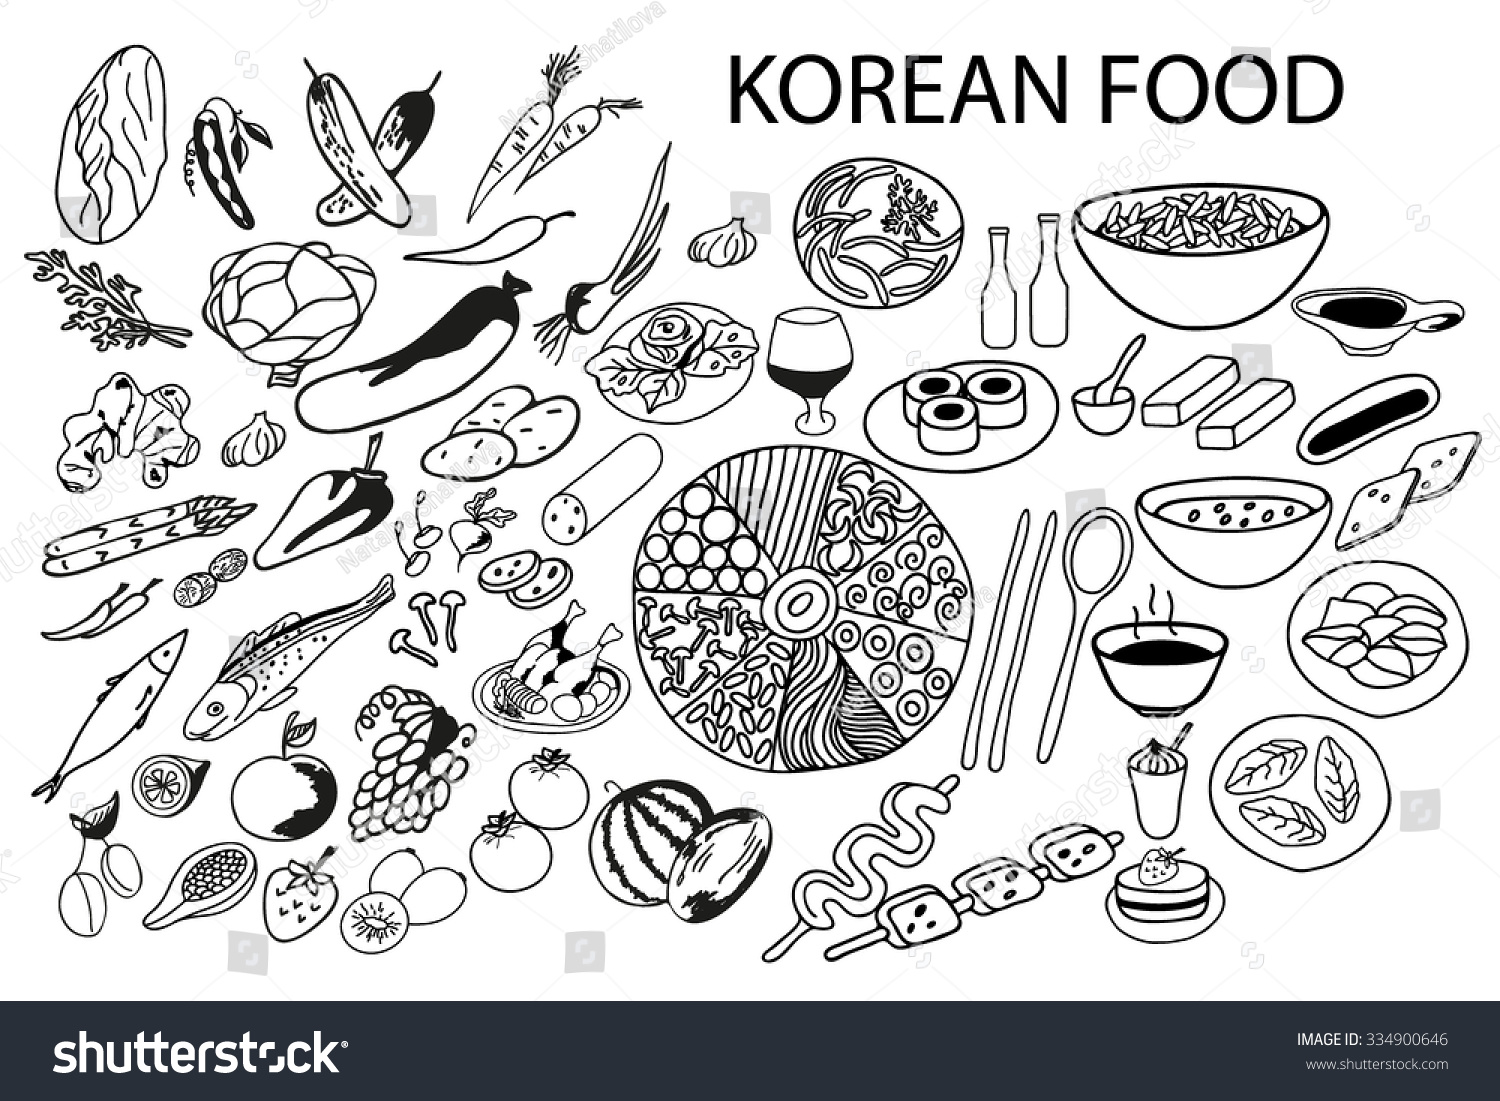 Set Of Vector Elements For Healthy Food Hand Drawn Black And WhiteKorean